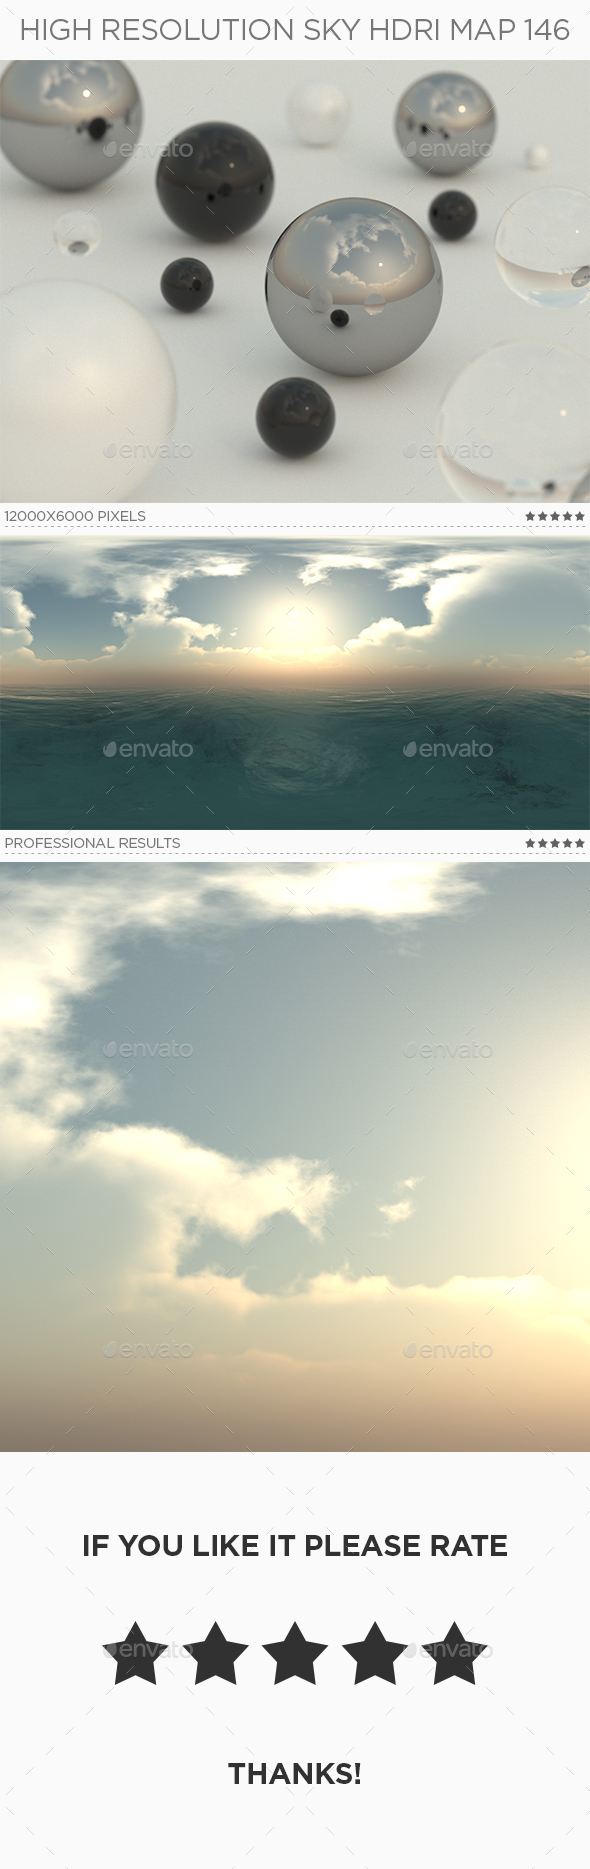 3DOcean High Resolution Sky HDRi Map 146 20795605